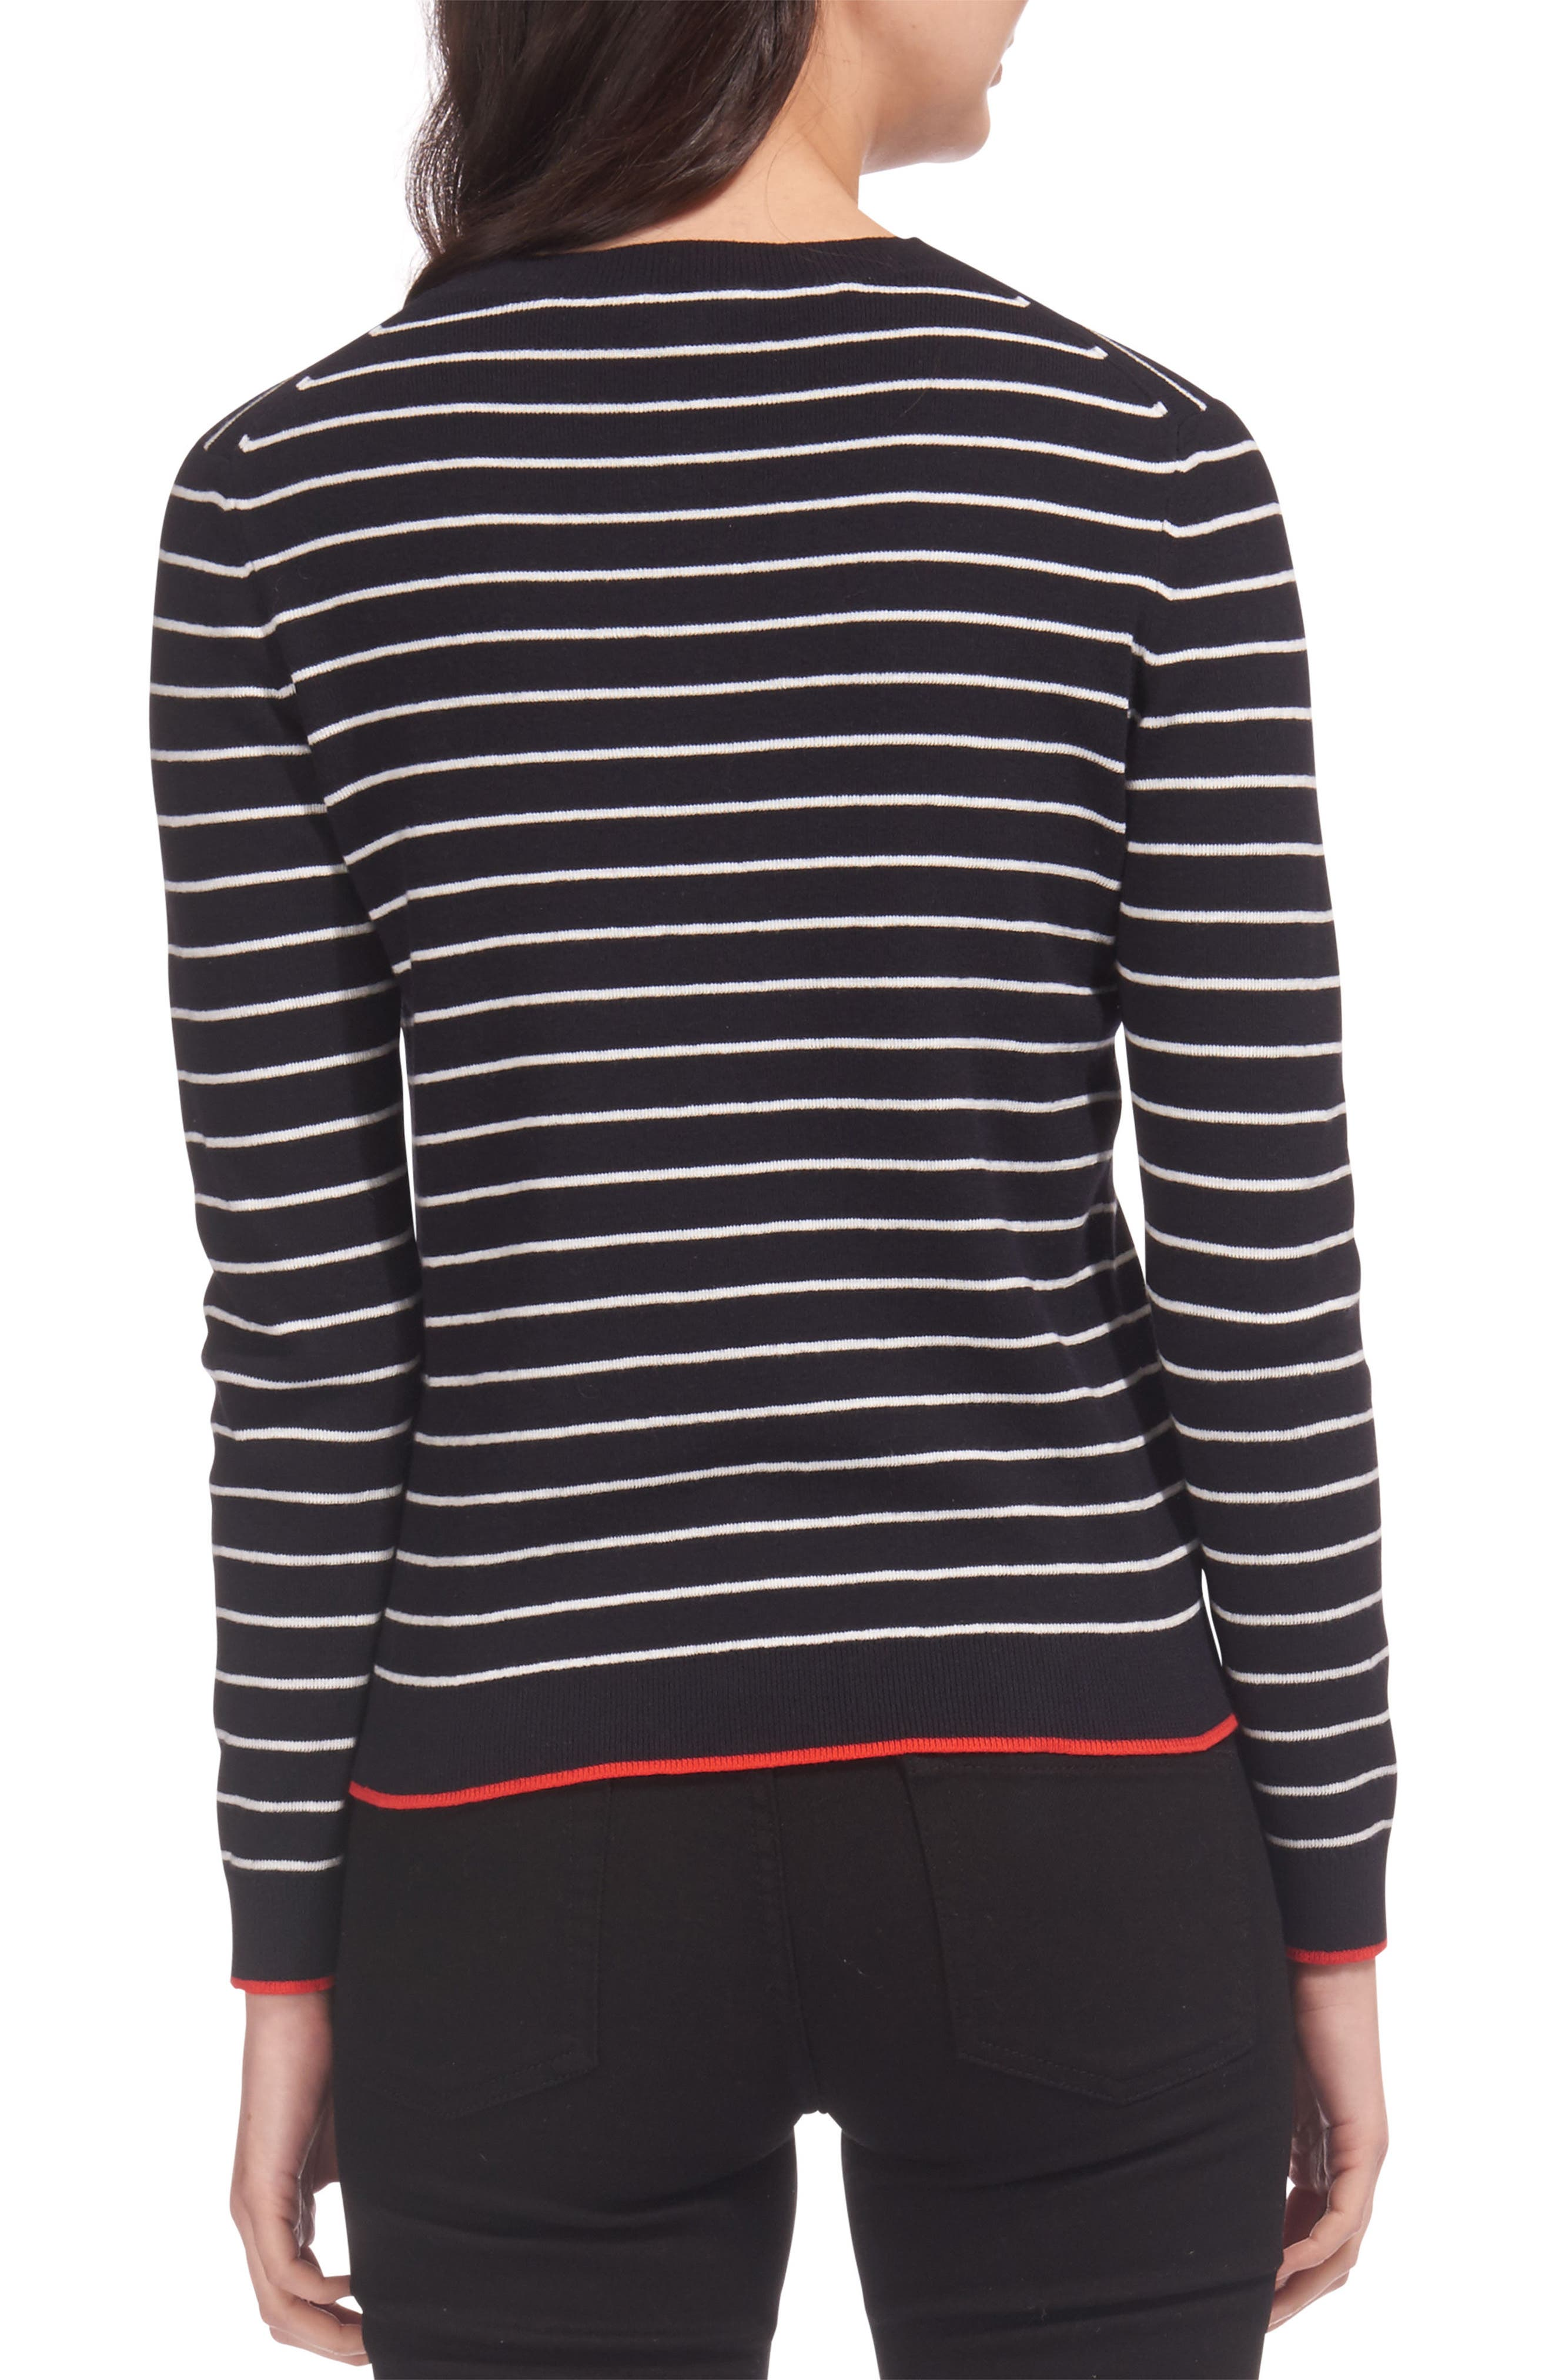 Kiss Embroidered Stripe Sweater,                             Alternate thumbnail 2, color,                             Multicolor